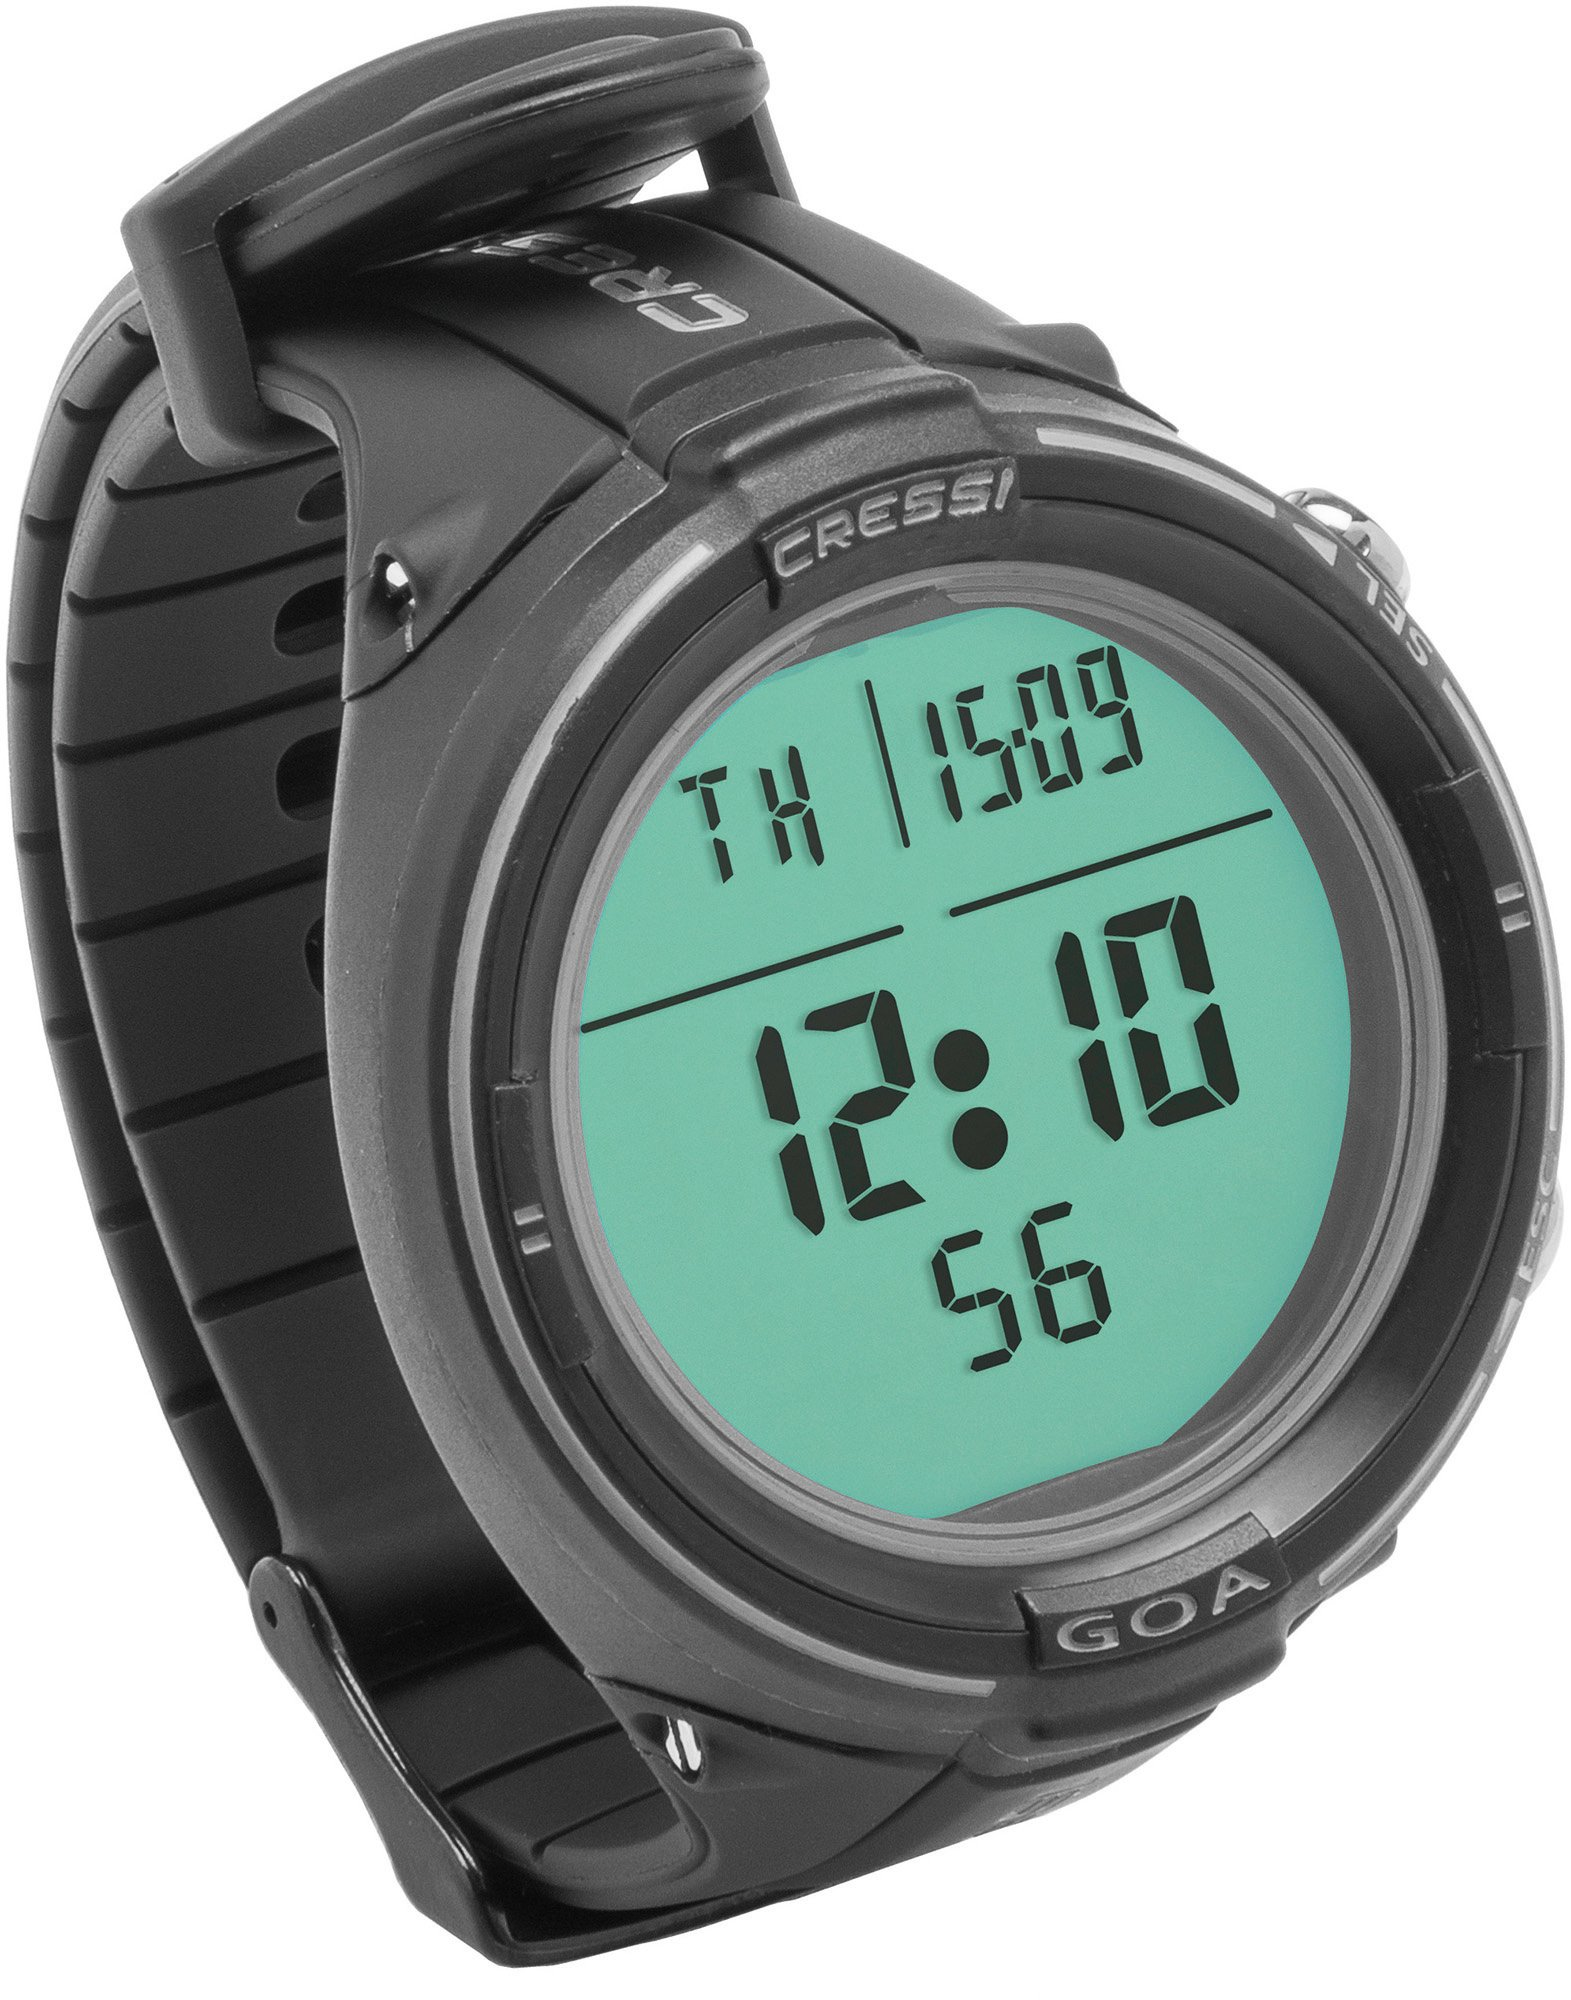 Cressi Goa Dive Watch Computer | 4 Programs - Air/Nitrox, Freediving, Gage | Made in Italy